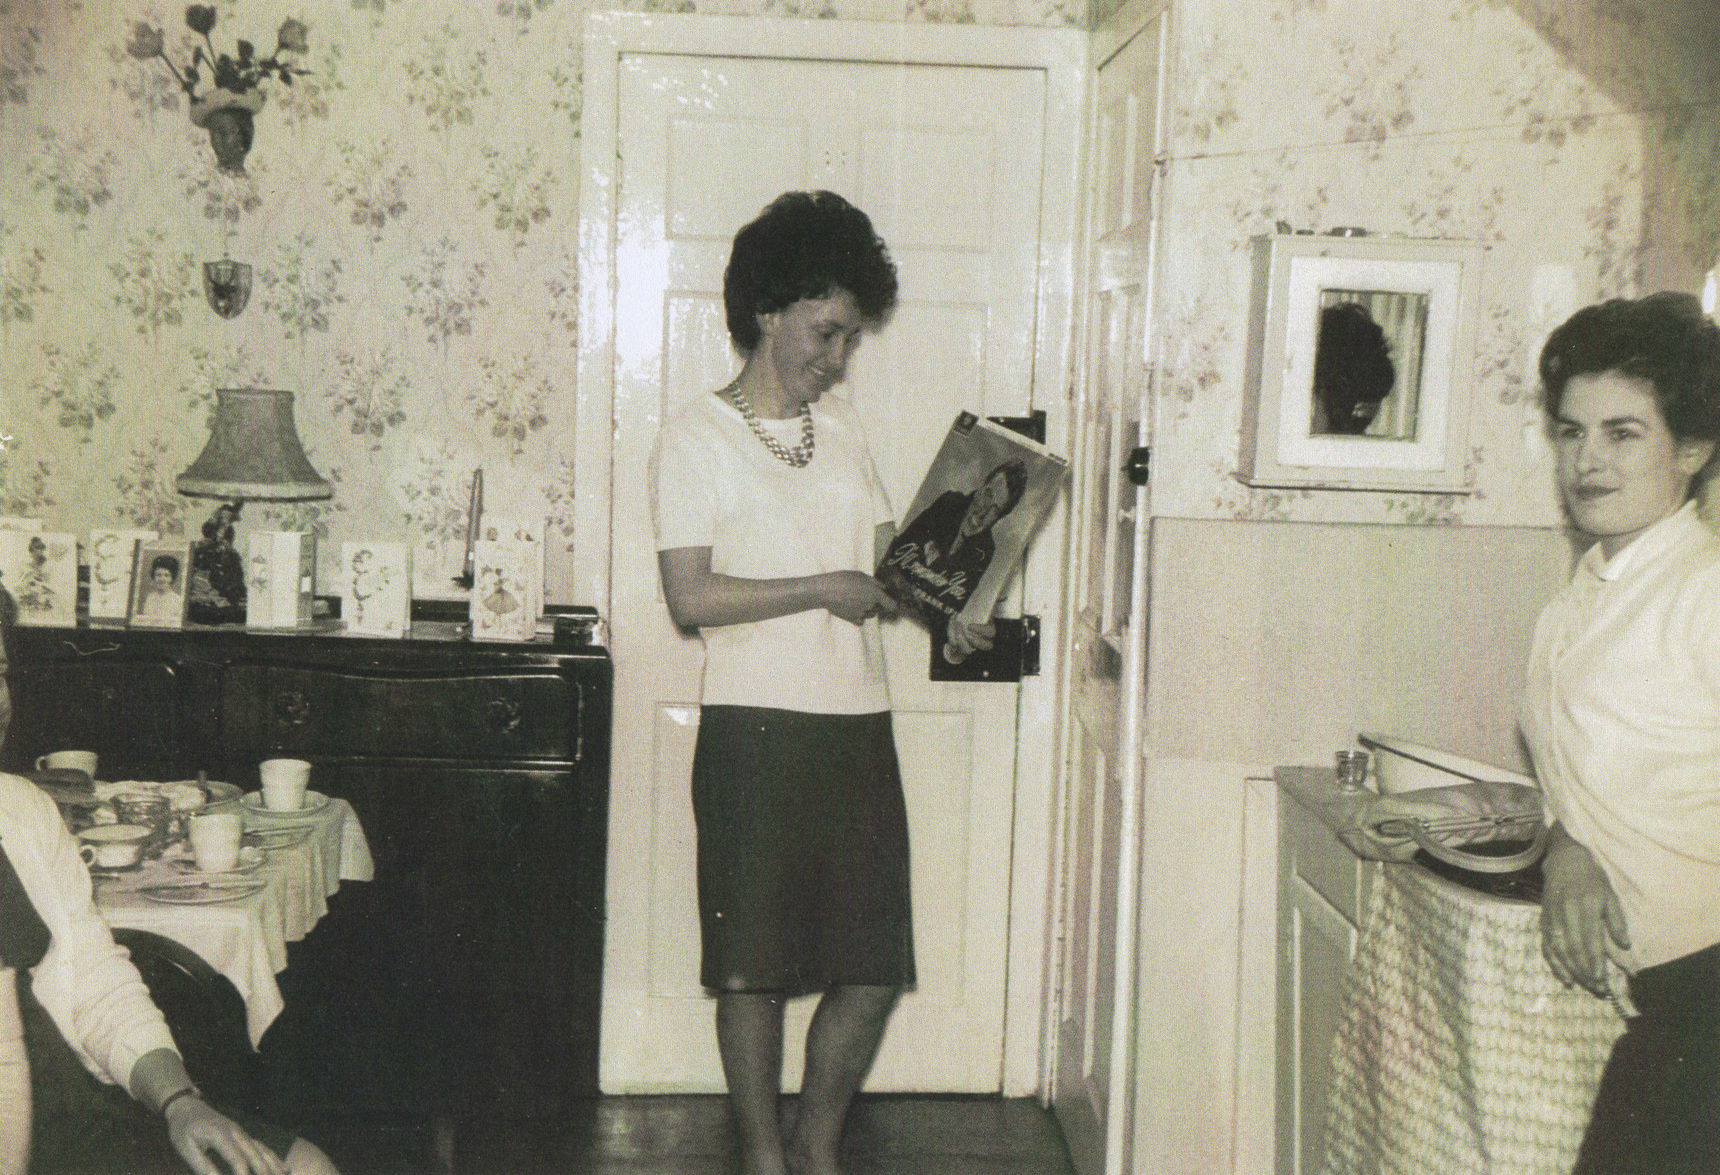 """Me holding a Long Playing Vinyl Record (LP) titled """"I'll Remember You"""" by Frank Ifield."""